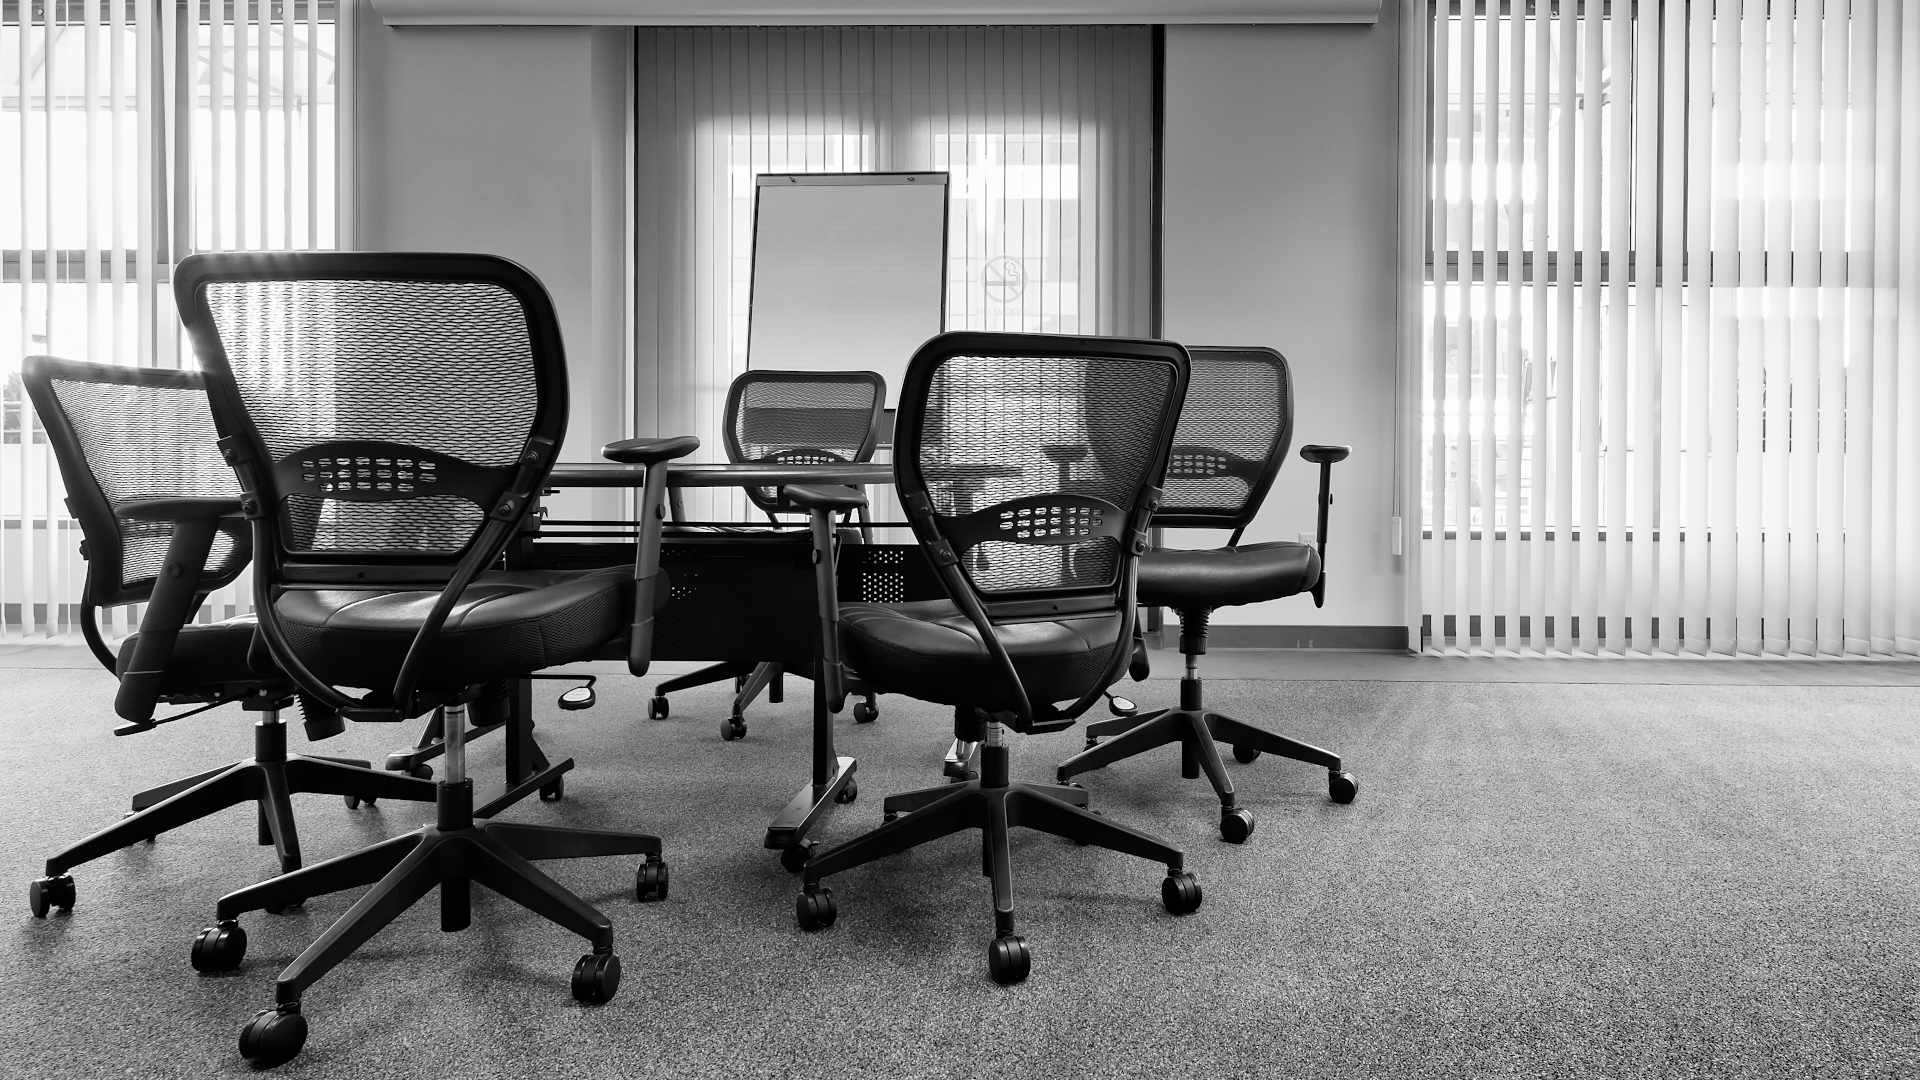 Best Office Chairs Of 2021 Top Seat Choices For Home Or Work Techradar